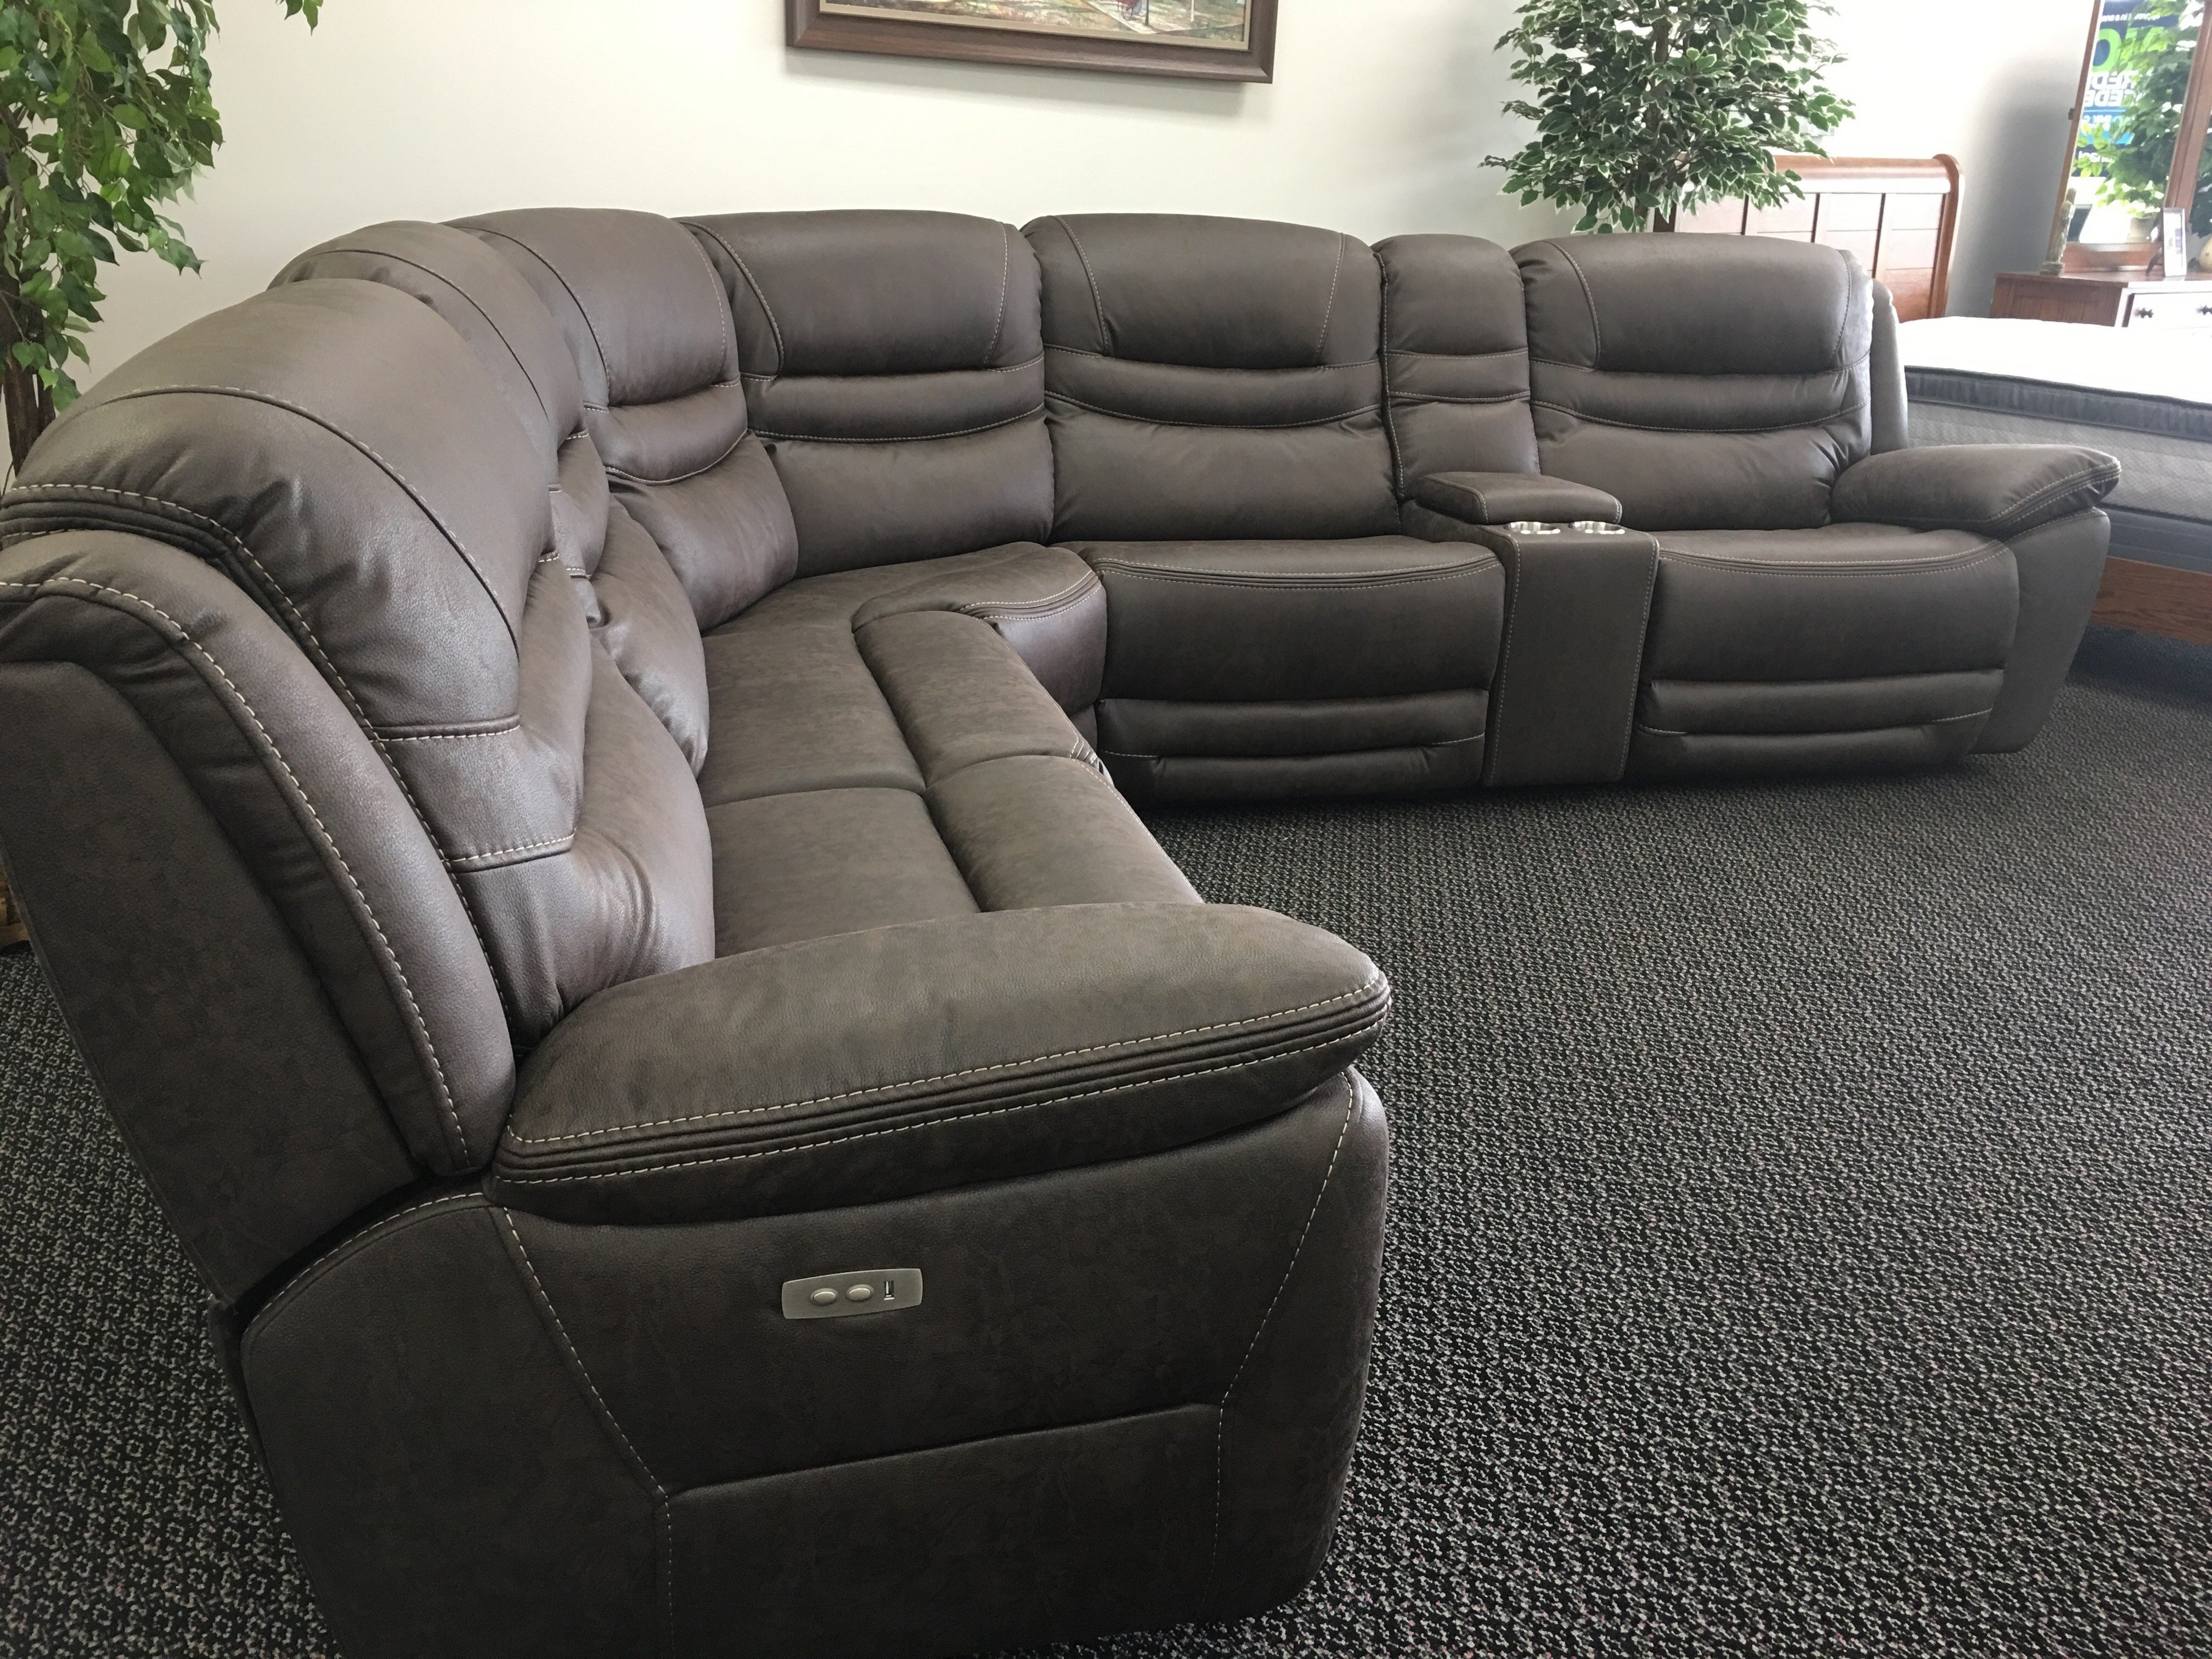 Recliner Sectional - Locsbyhelenelorasa intended for Denali Light Grey 6 Piece Reclining Sectionals With 2 Power Headrests (Image 28 of 30)